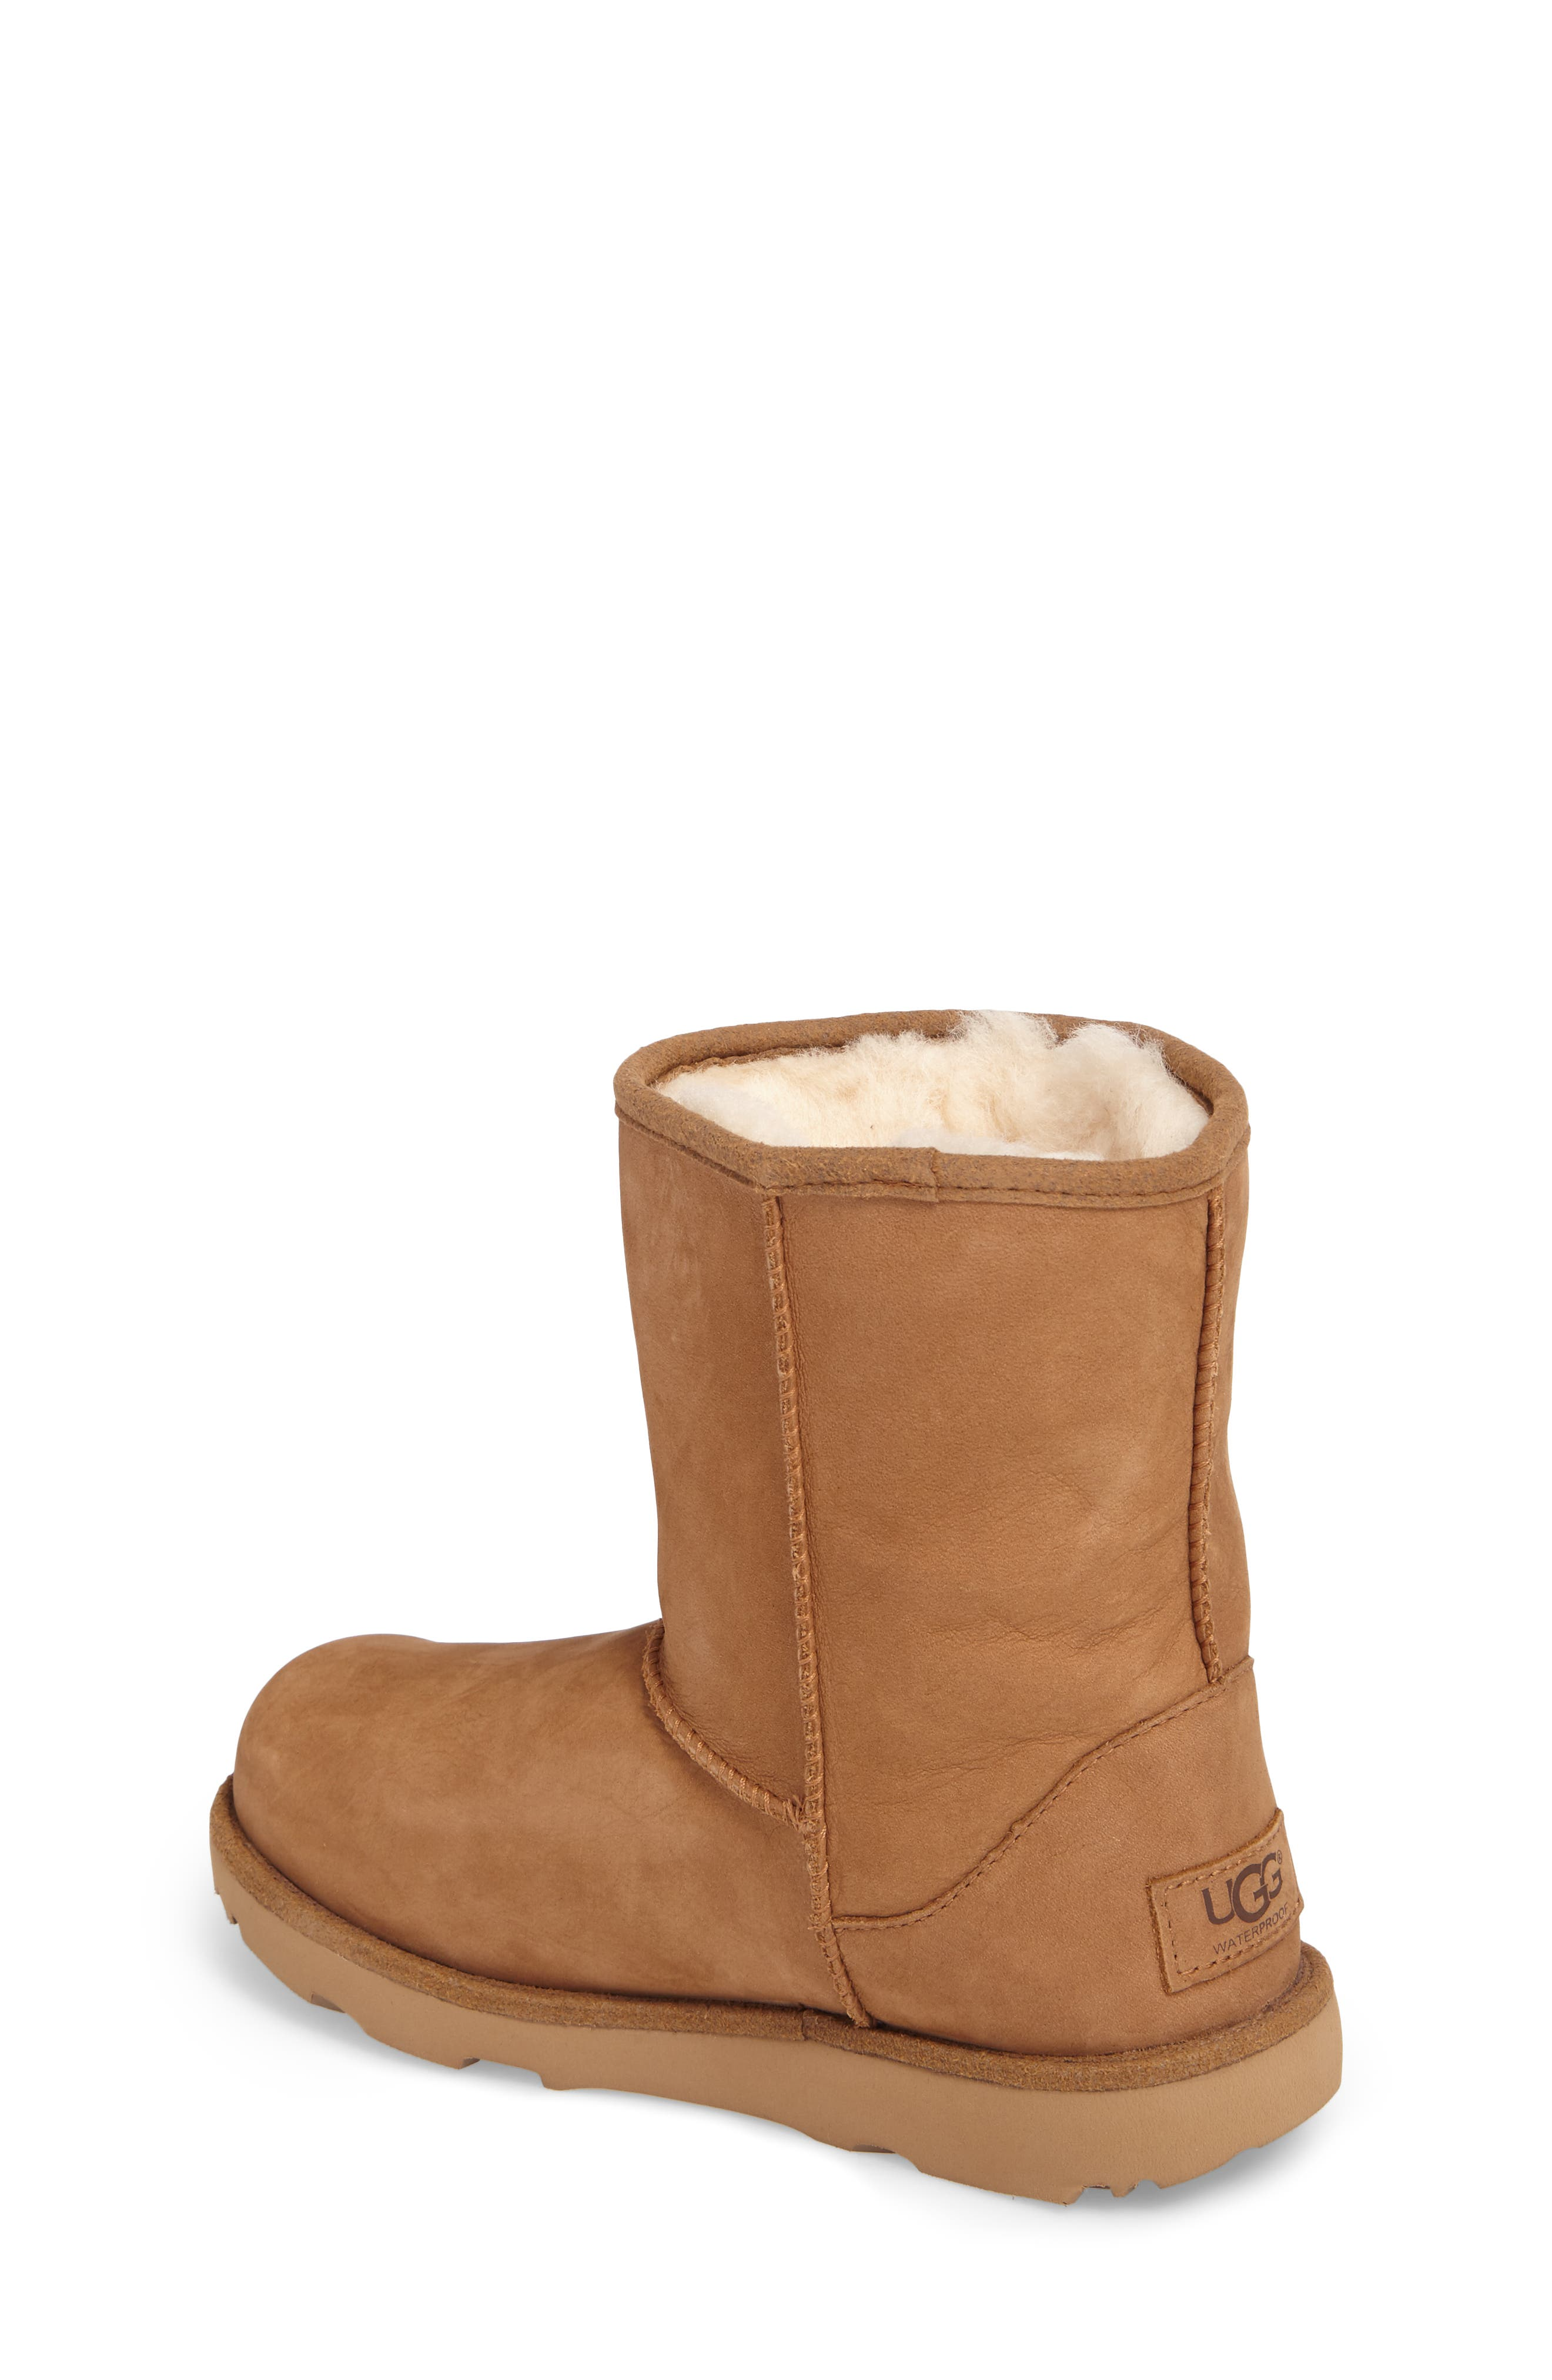 UGG<SUP>®</SUP>, Classic Short II Waterproof Boot, Alternate thumbnail 2, color, CHESTNUT